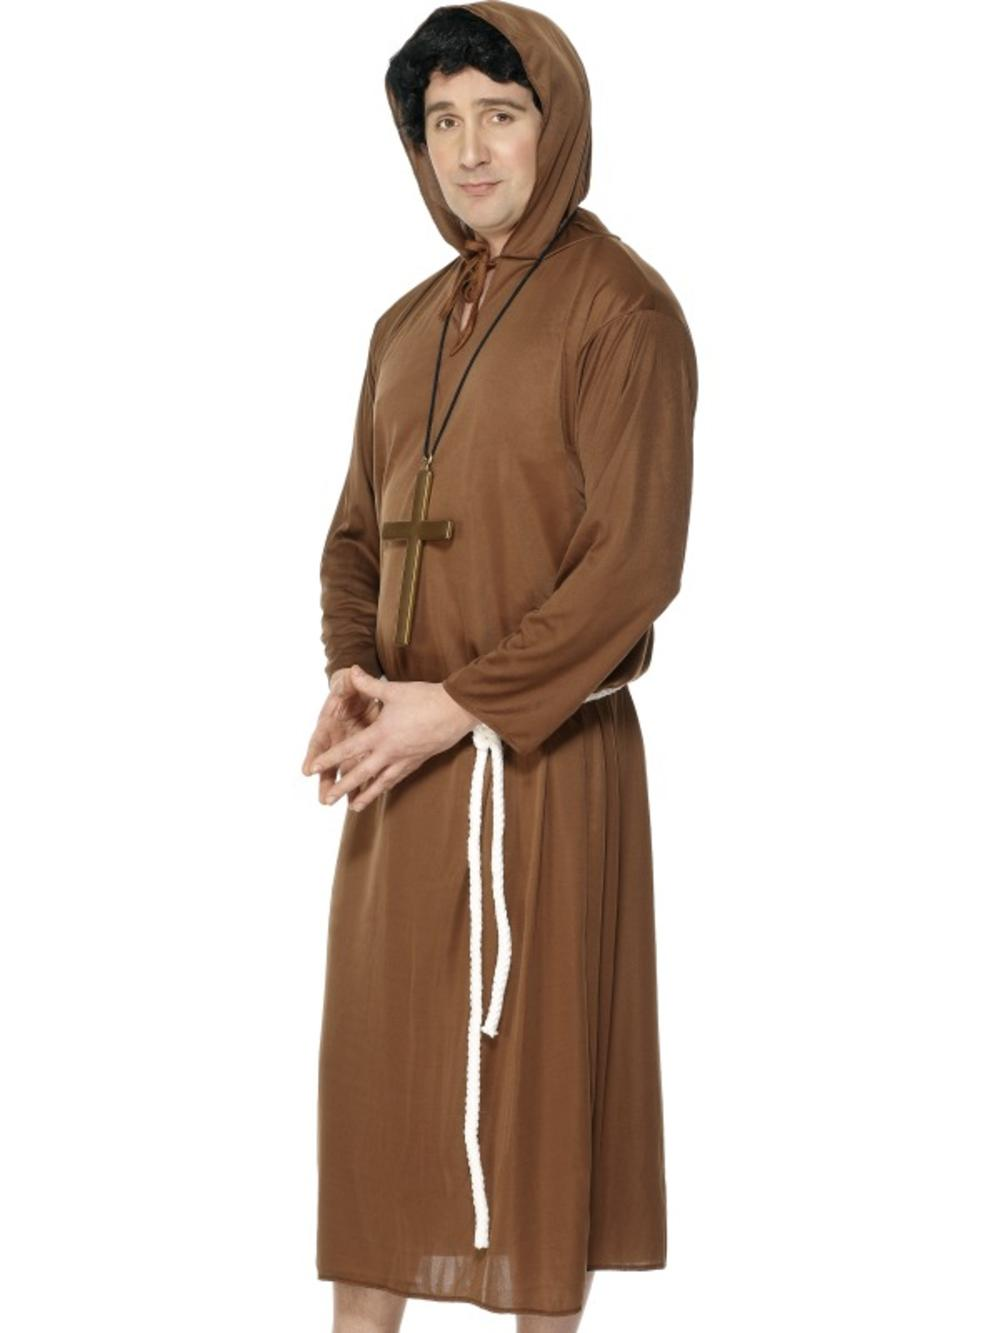 Monk Brown Robe Medieval Fancy Dress Mens Friar Tuck Adult Priest Costume Outfit